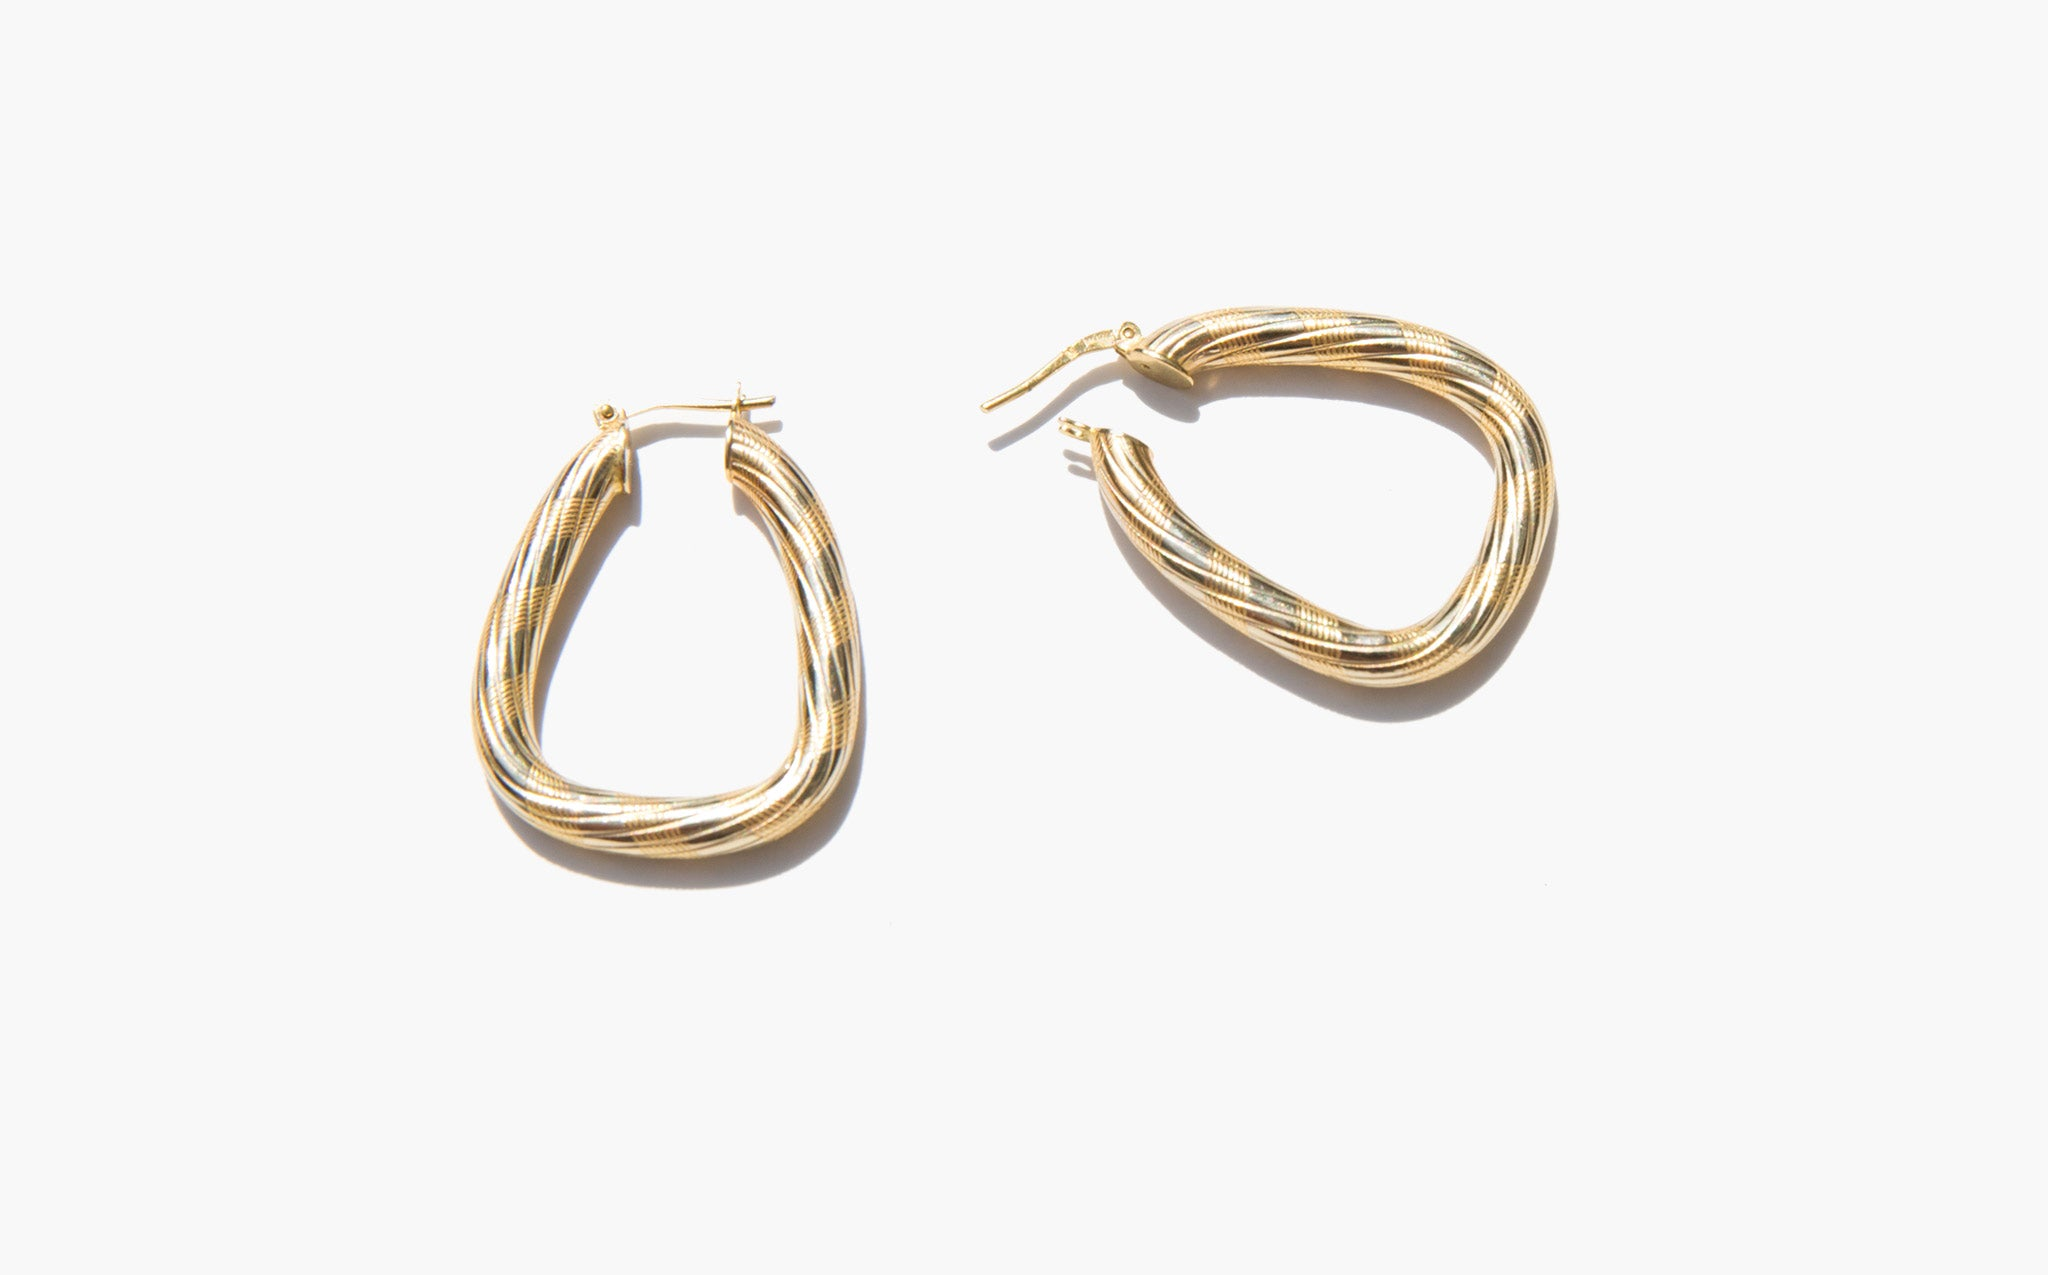 Prescott Earrings